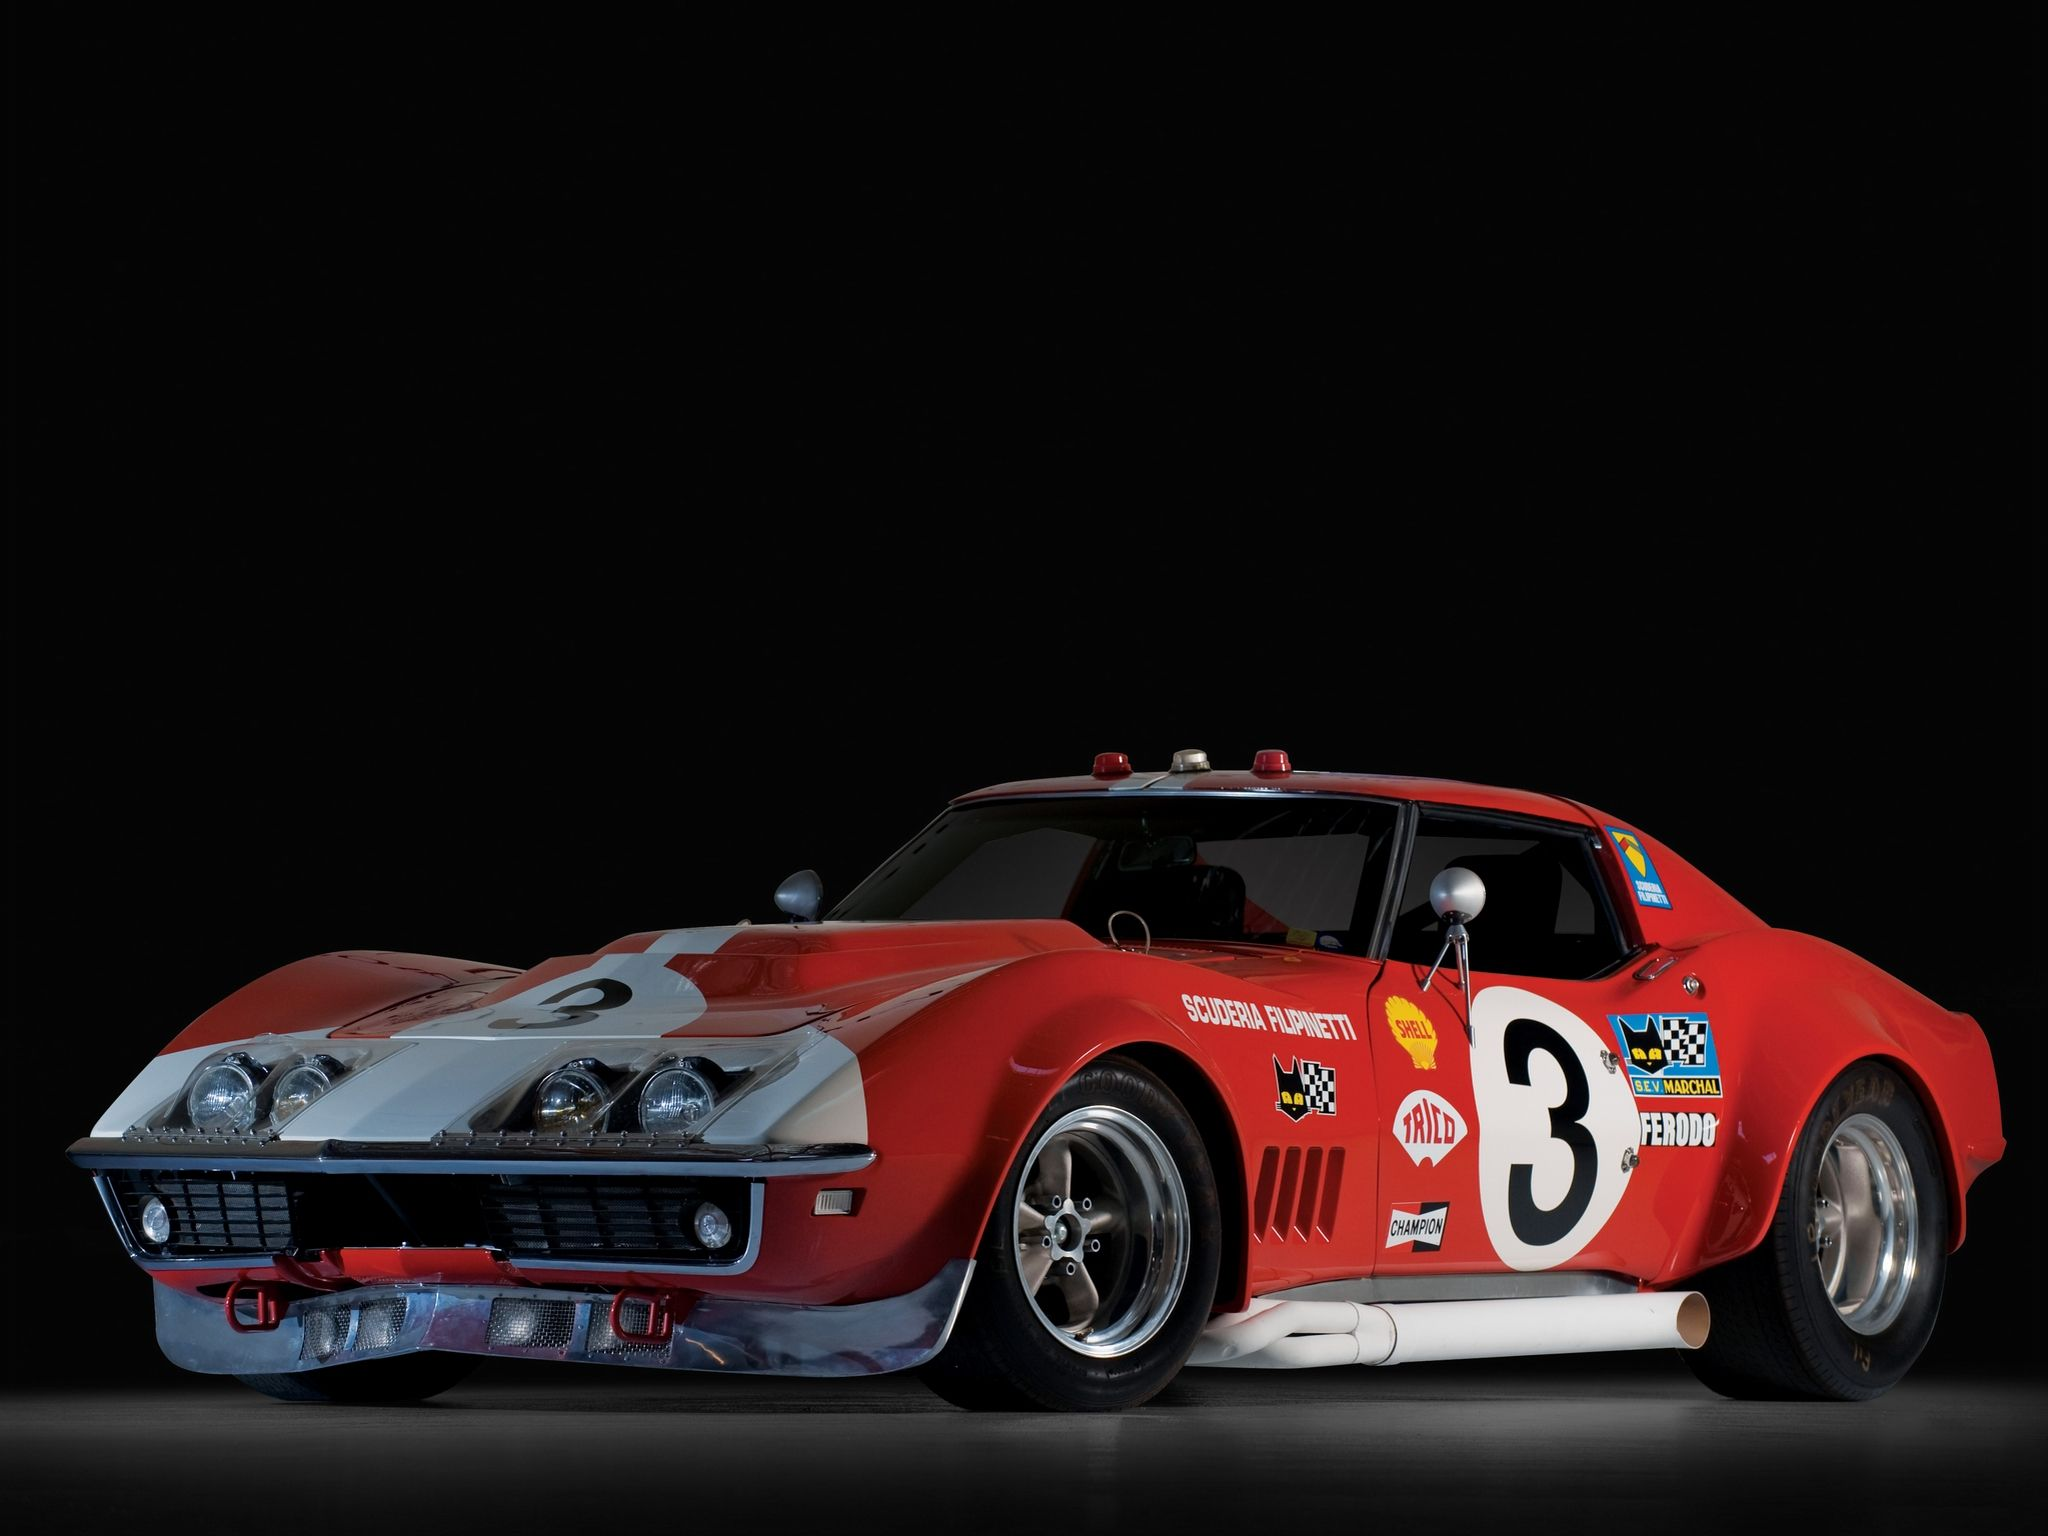 Classic Race Car Wallpapers Top Free Classic Race Car Backgrounds Wallpaperaccess